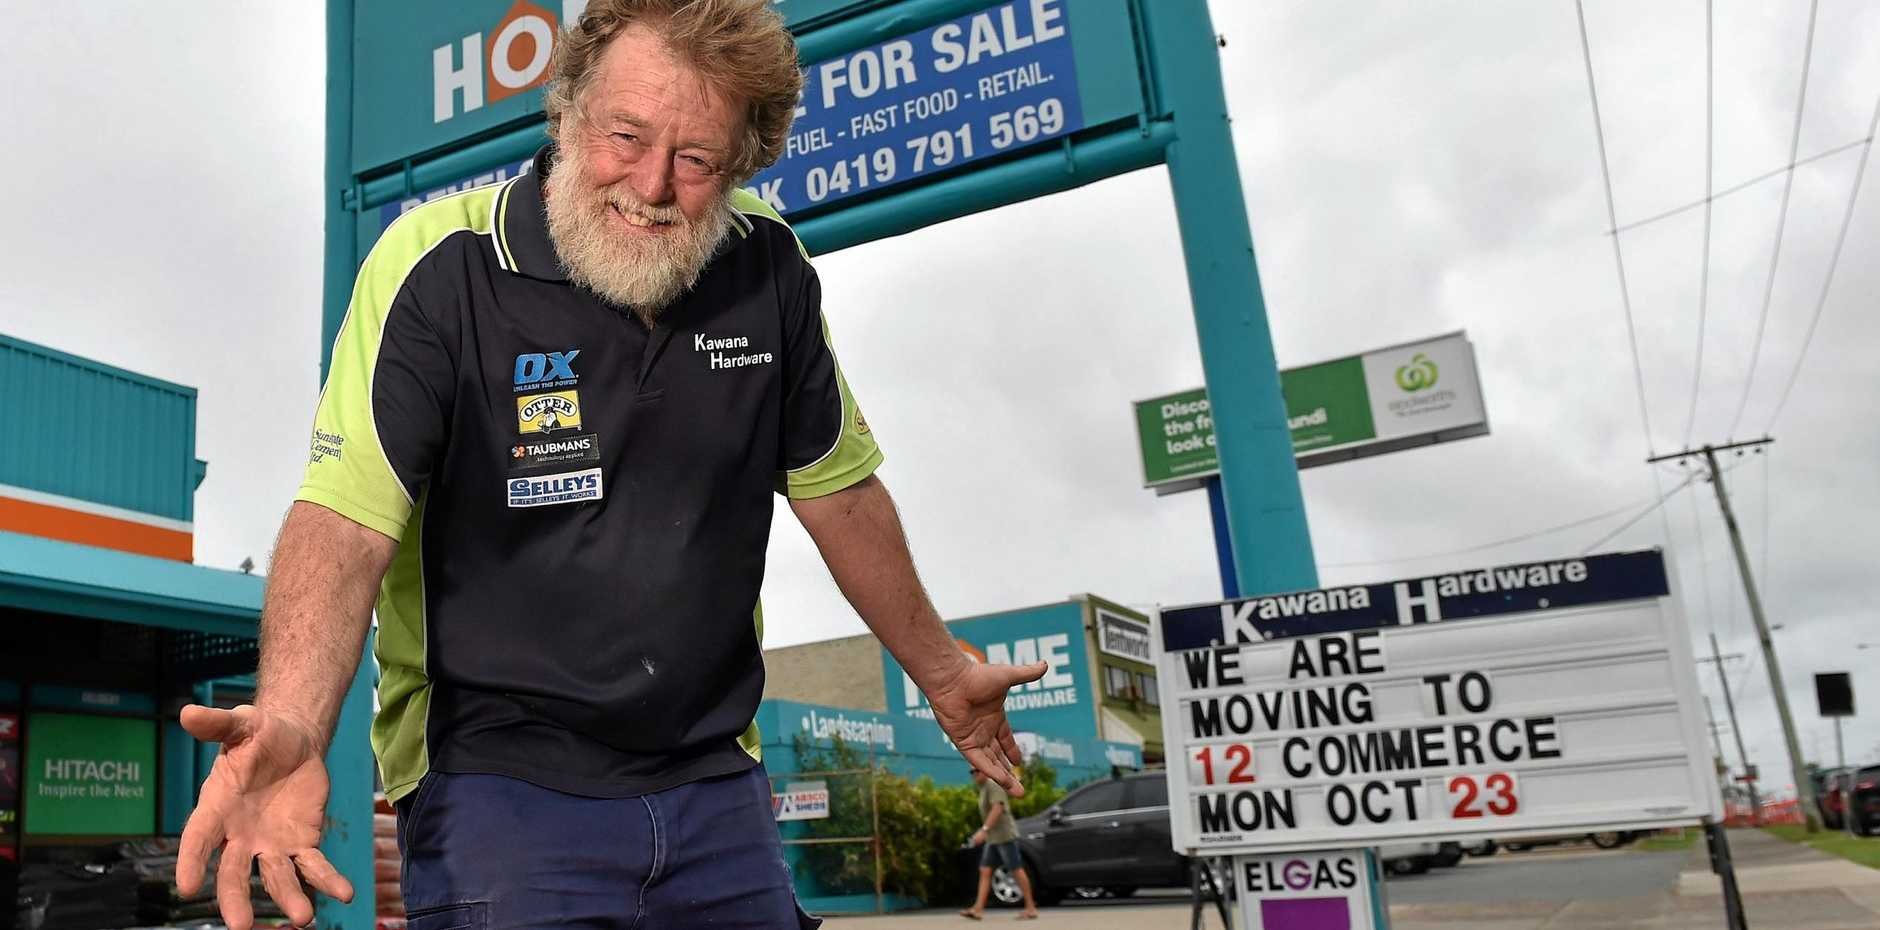 MOVING PLACES: Kawana Harware established in 1984 is changing locations and Ian Witten has been with the company from 1998.